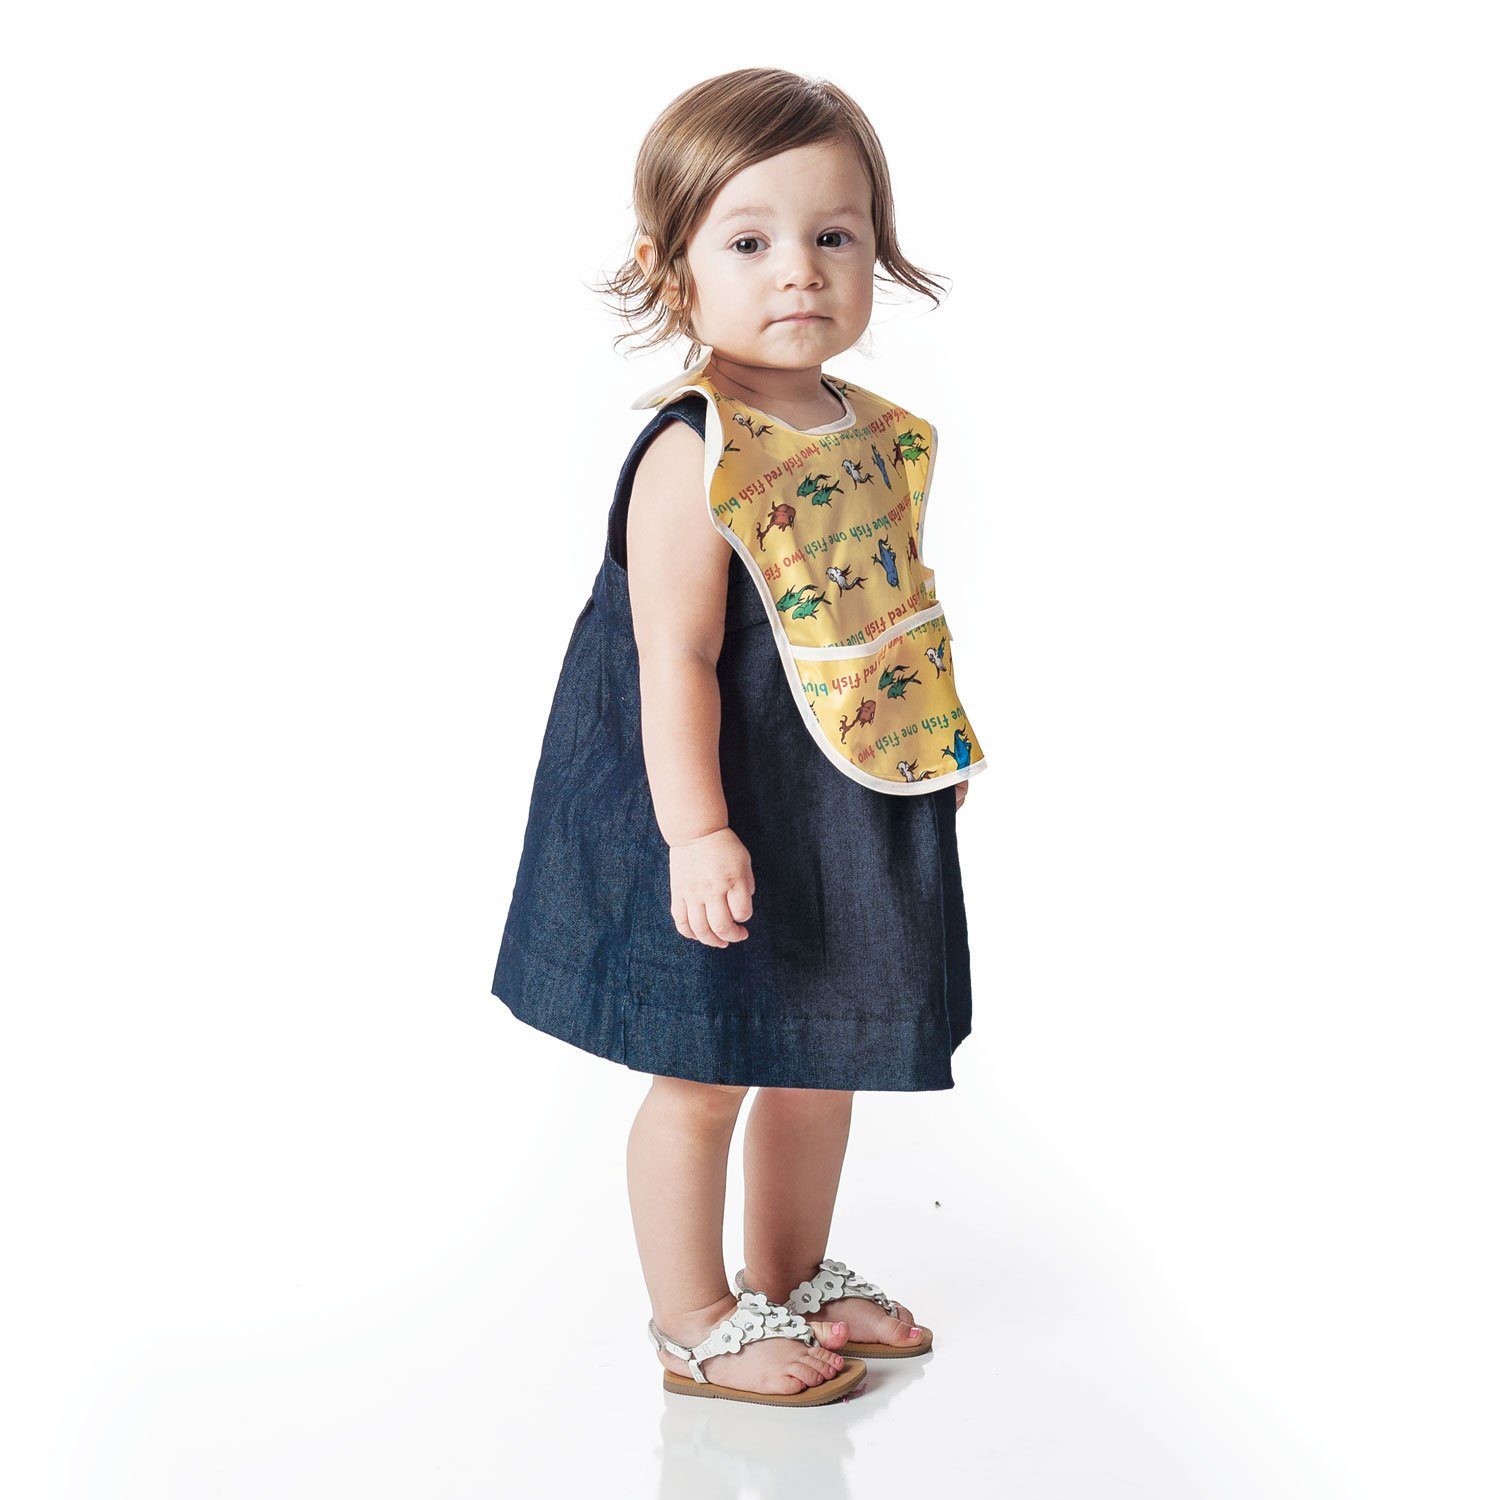 The Bumkins Waterproof Super Bibs are stain and odor resistant.